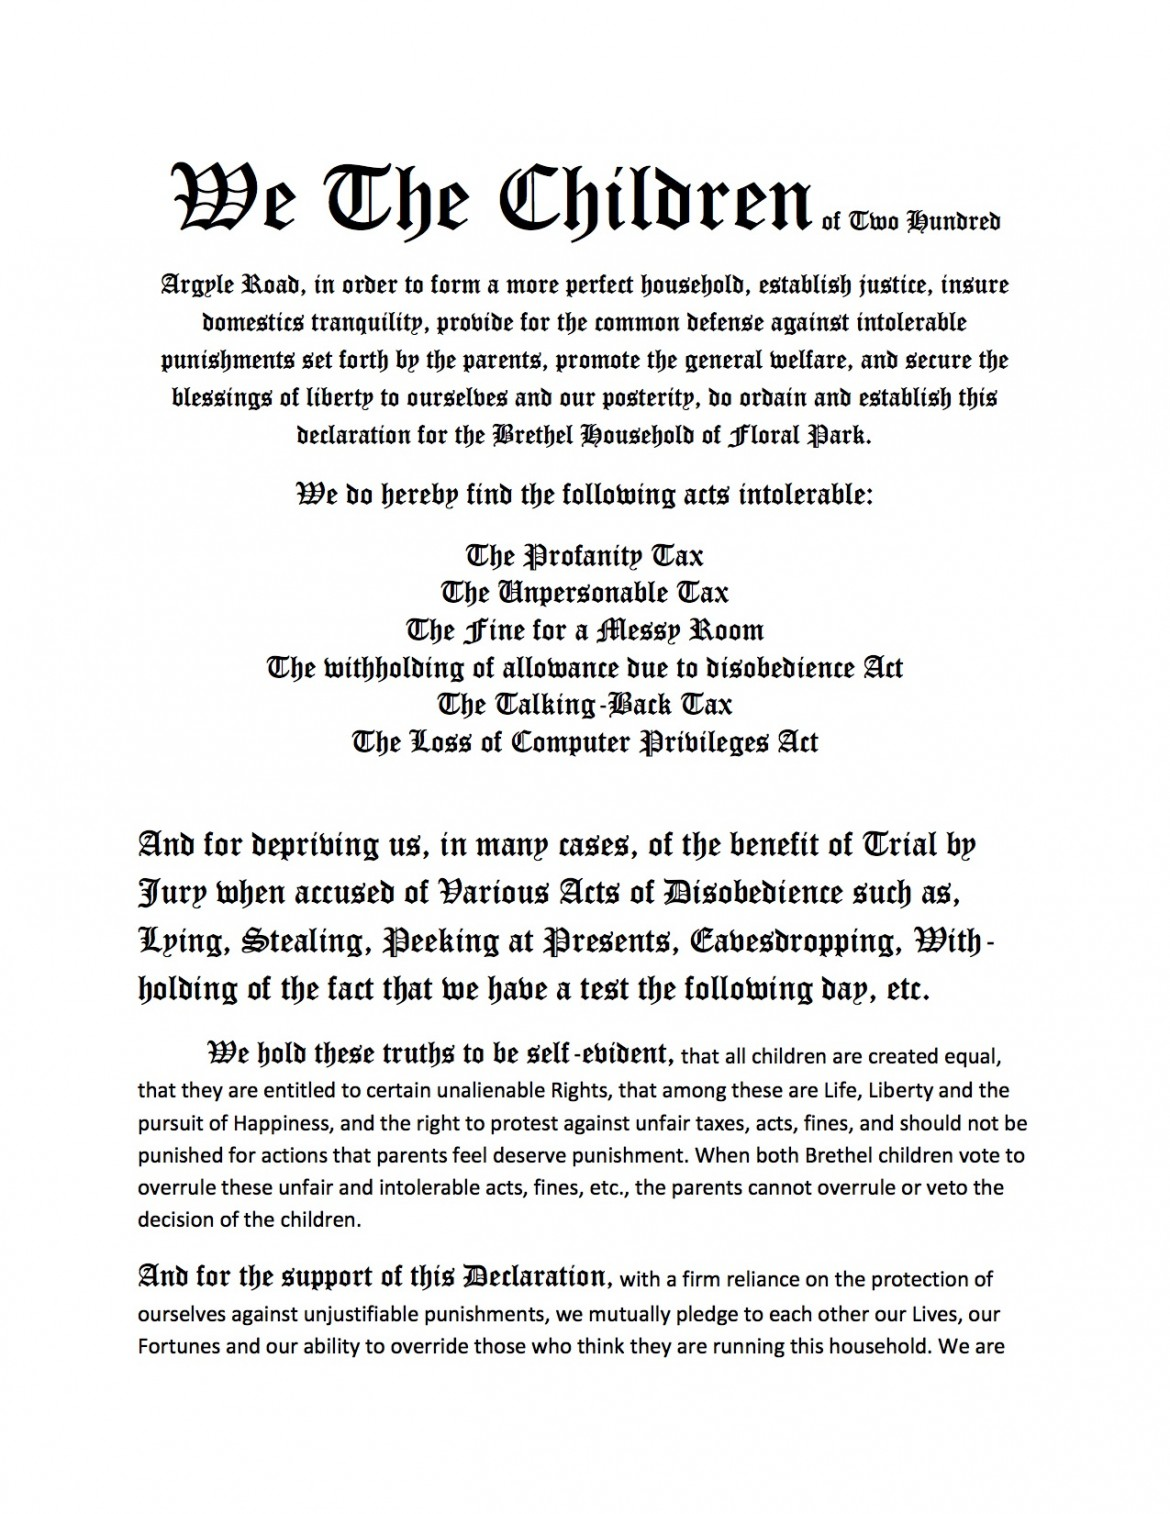 We the Children Declaration of Independence | Declaration Project